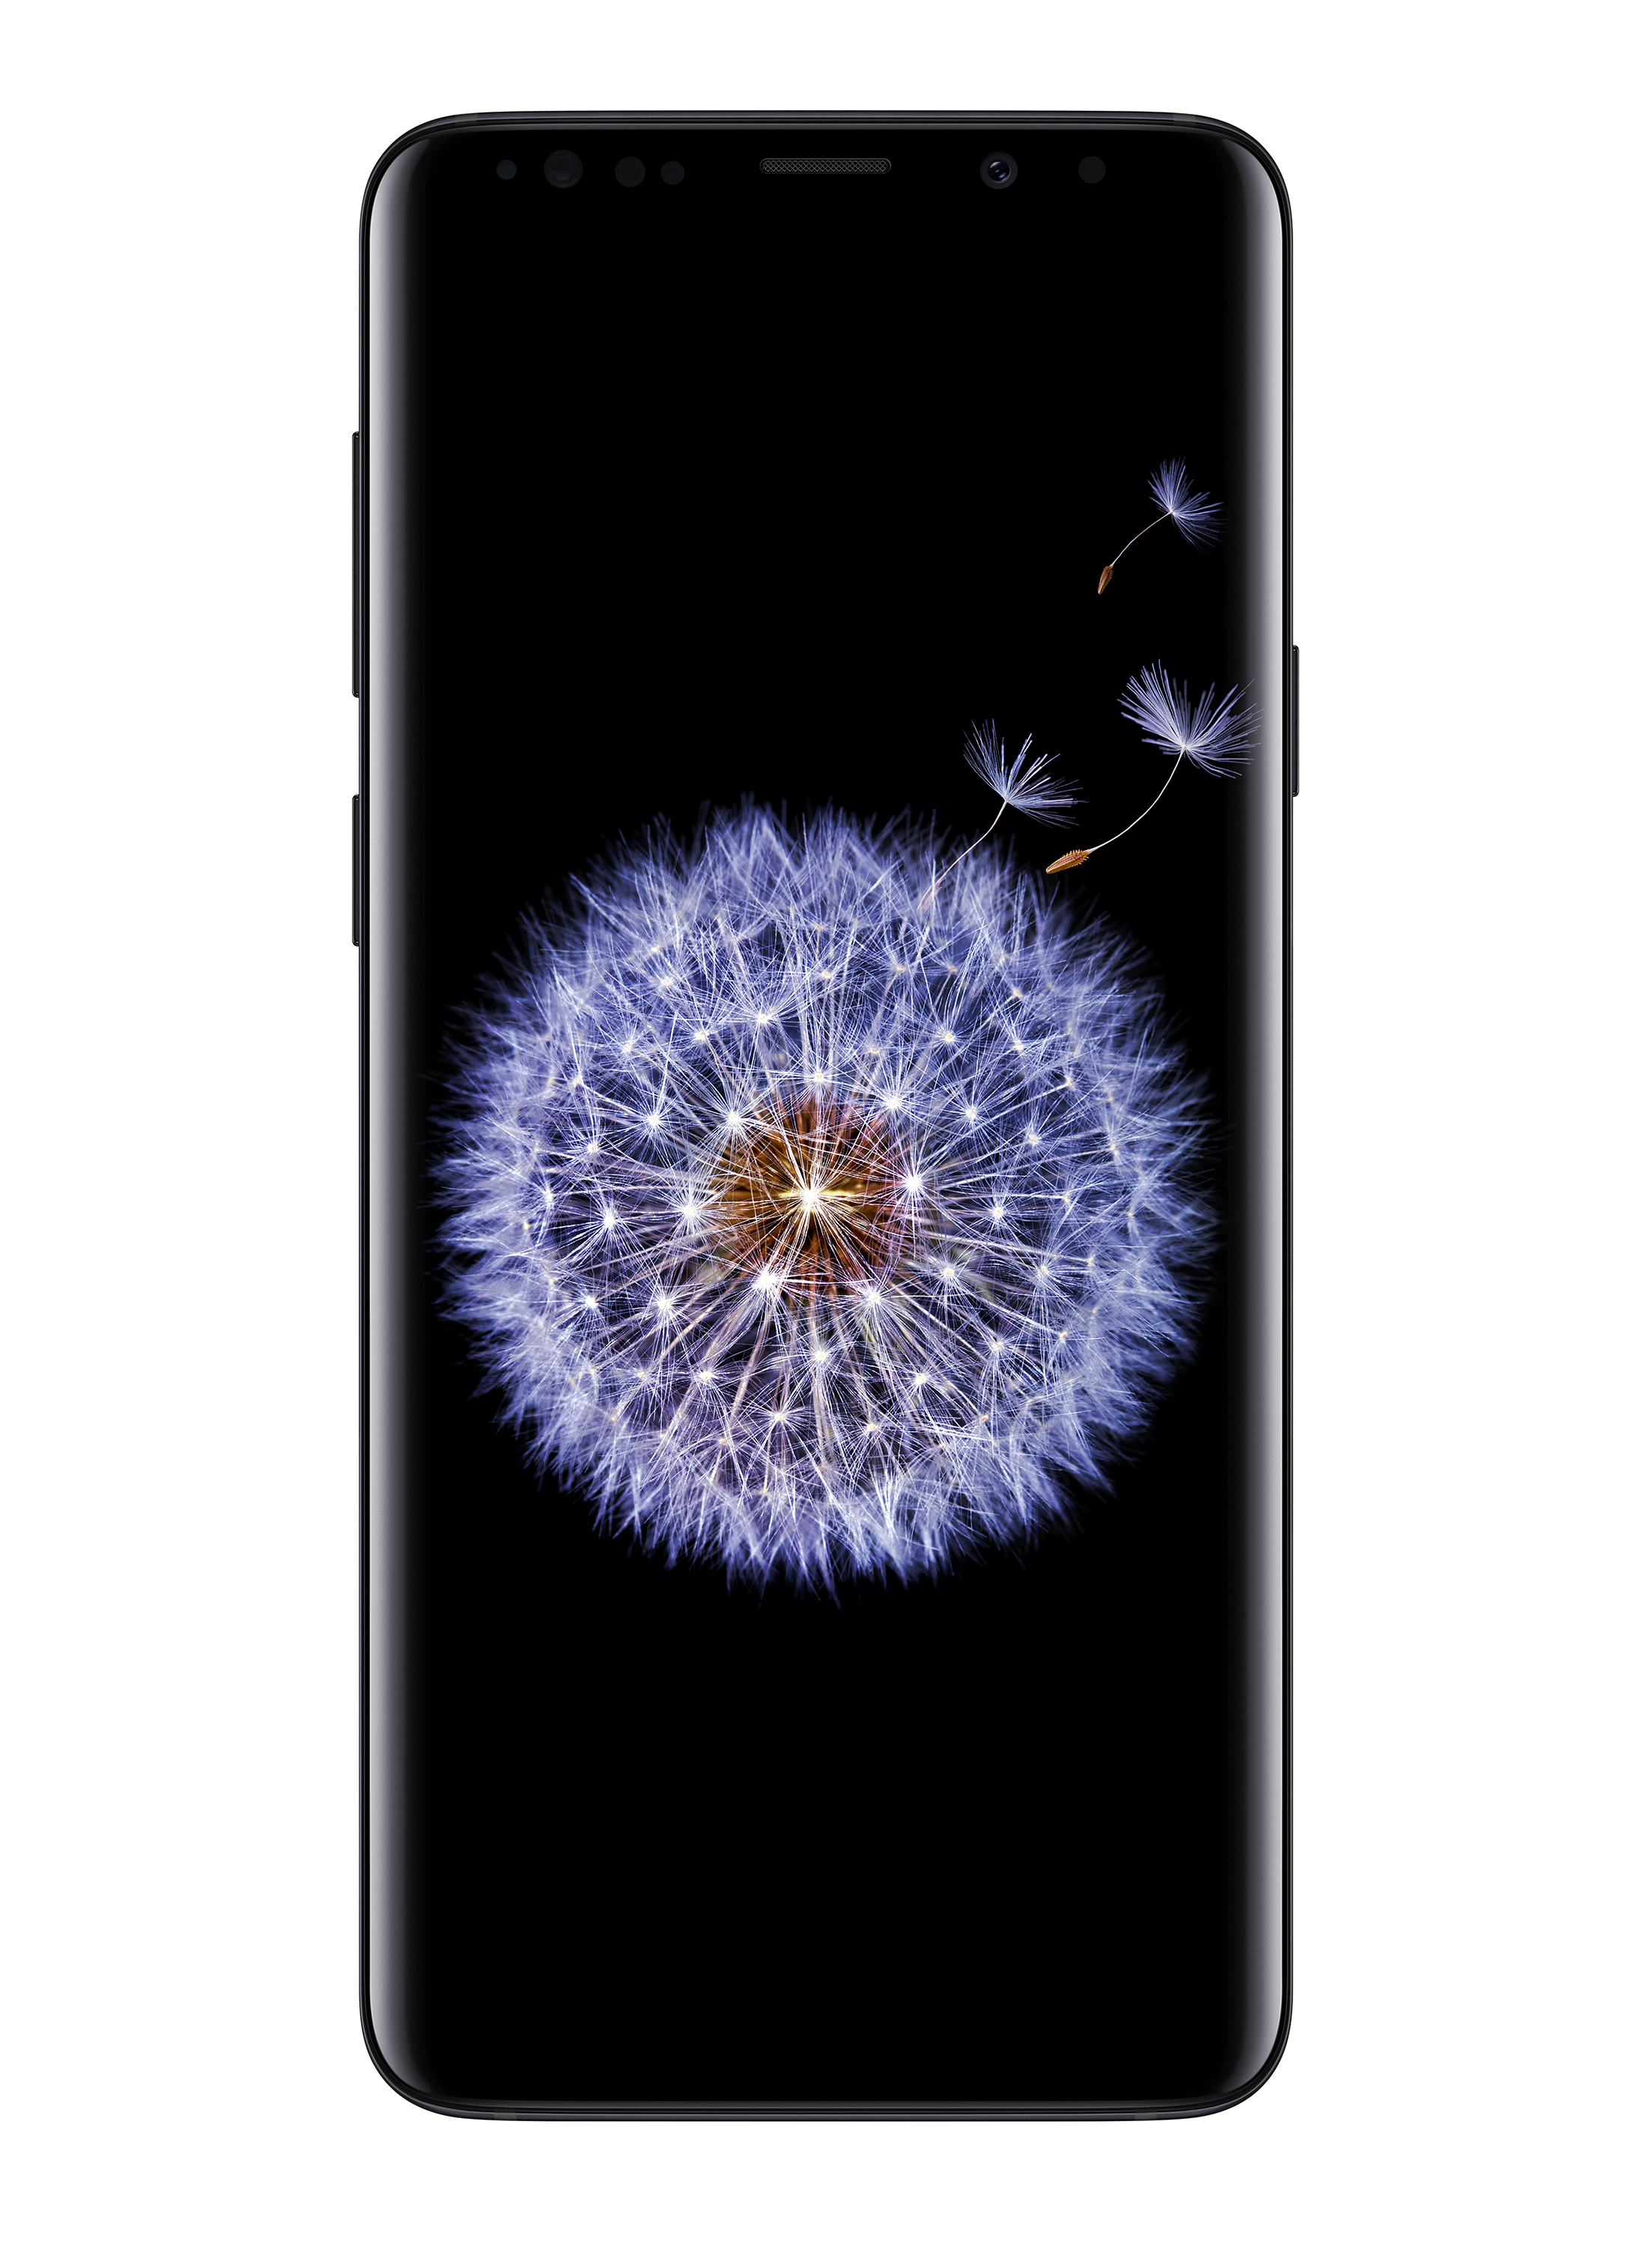 Samsung Galaxy S9 64gb Unlocked Smartphone, Black by Samsung